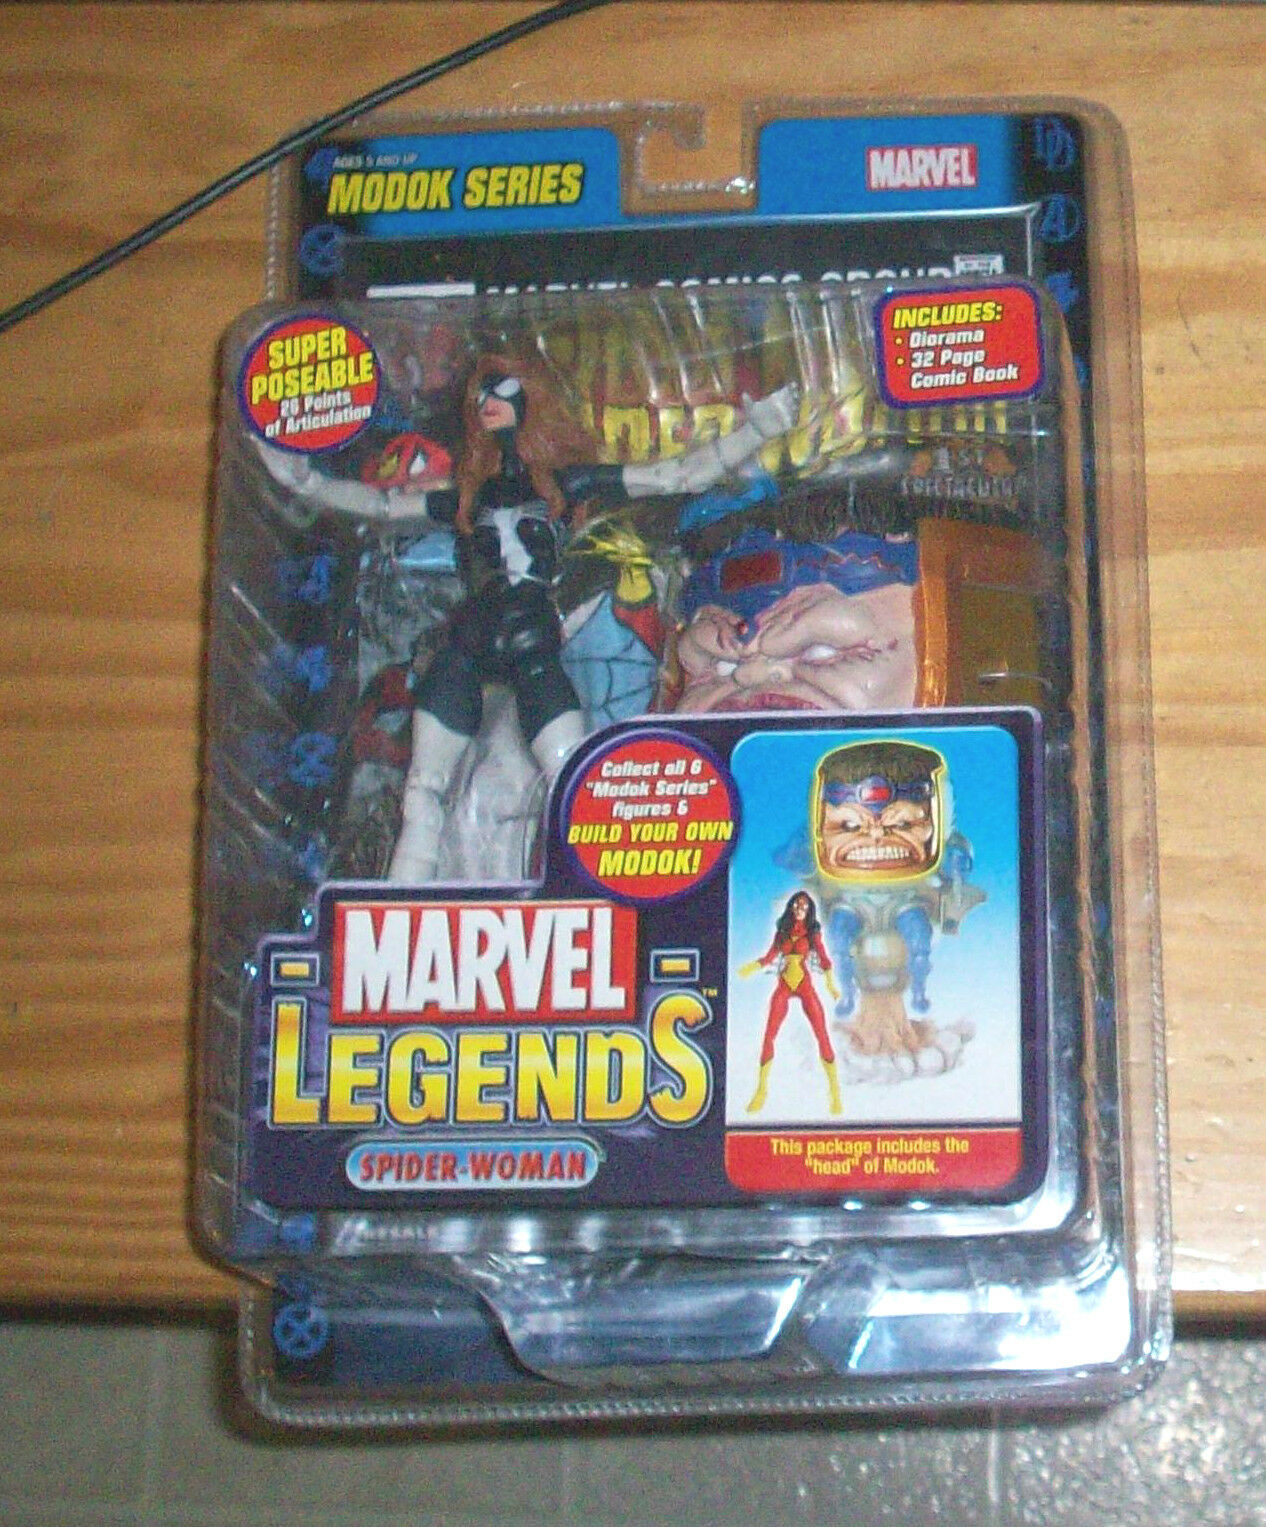 MARVEL LEGENDS 15 MODOK SERIES SPIDER donna VARAINT CHASE azione cifra UNIVERSE